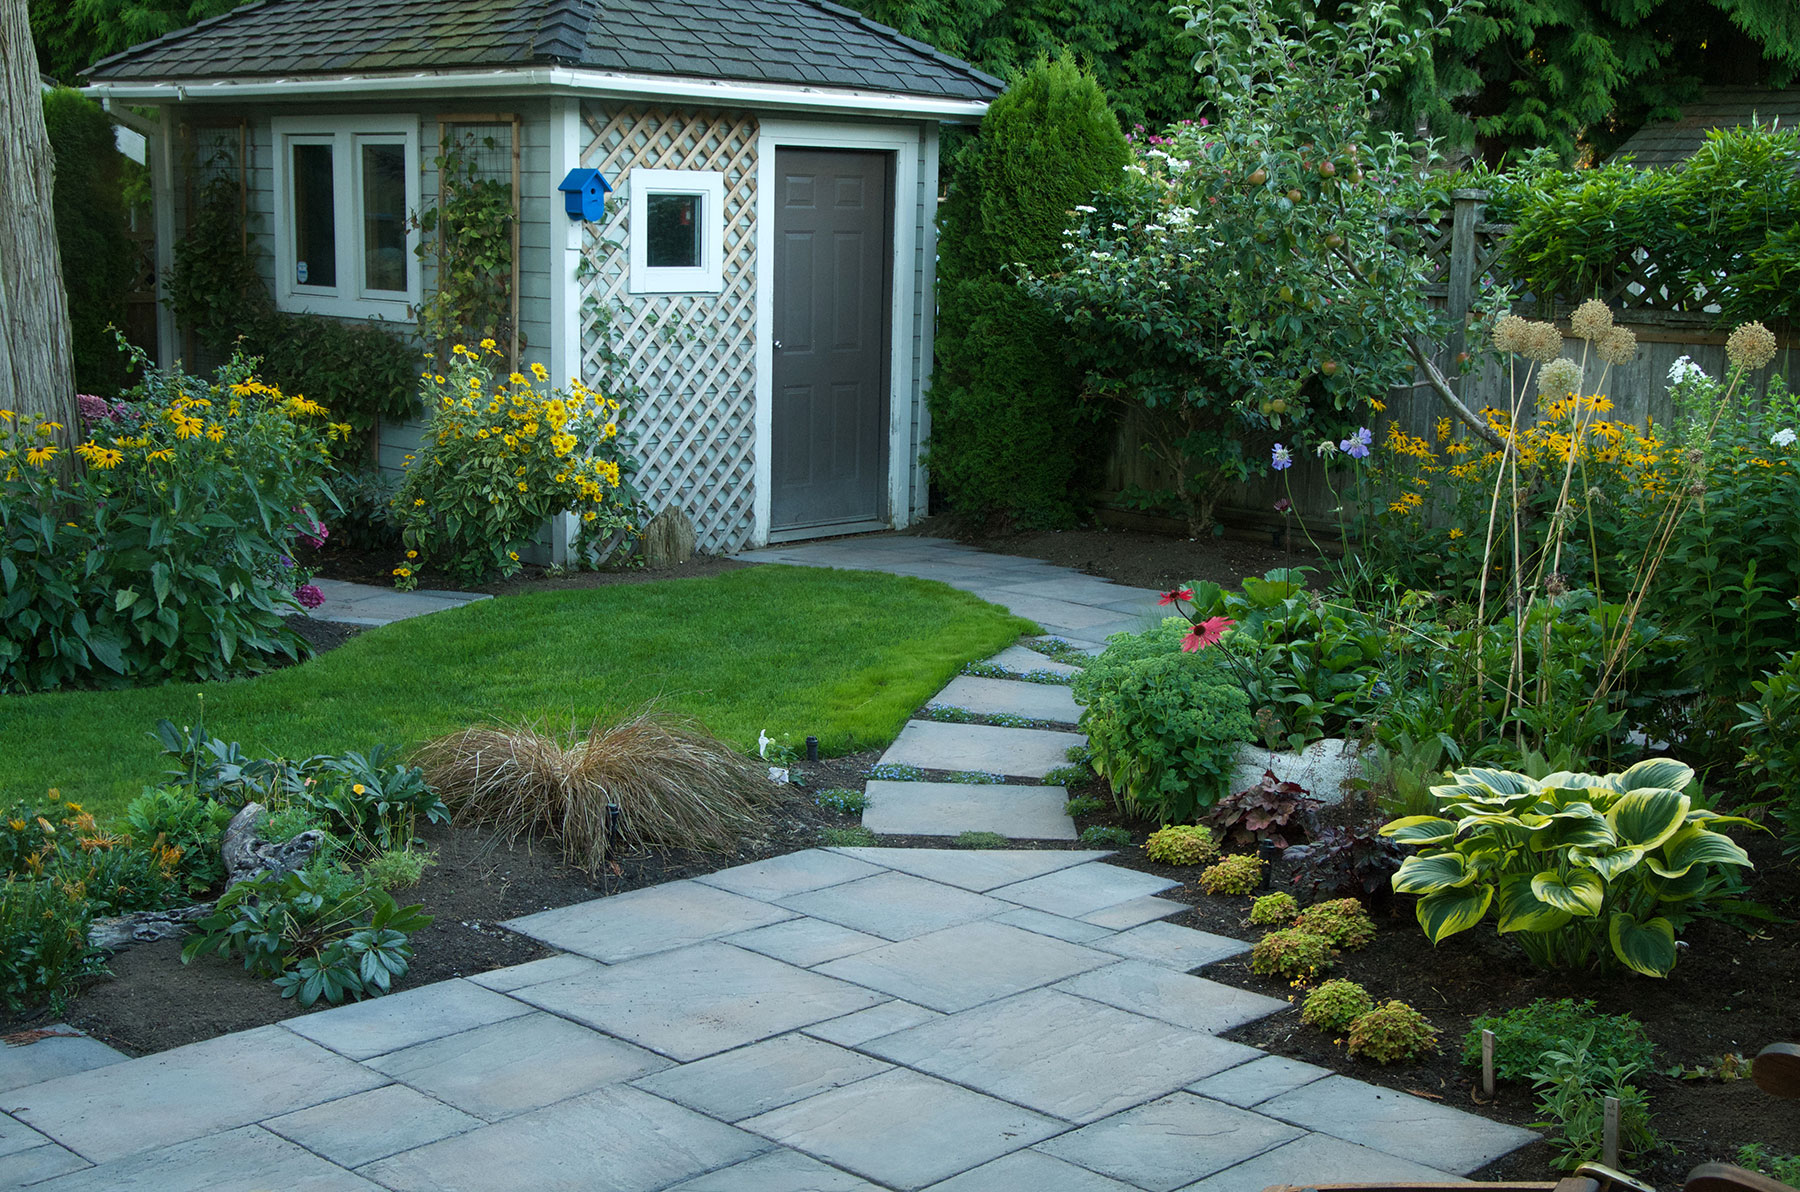 Landscape Contractors Build Functional Backyard & Peaceful Retreat in Surrey, BC